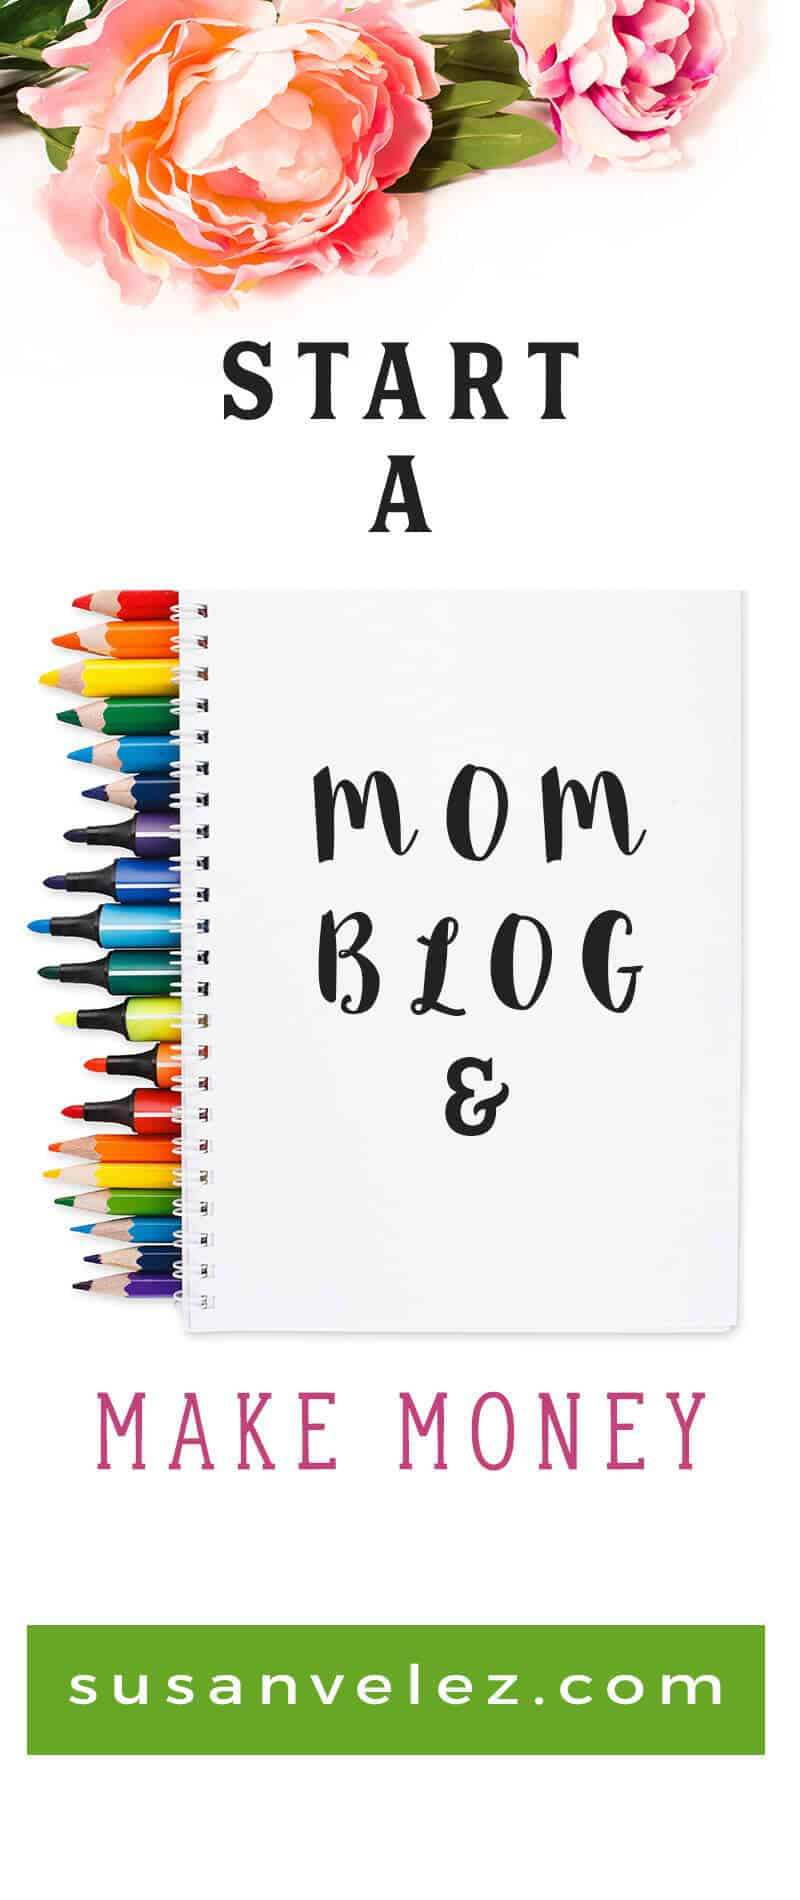 Start a mom blog to make extra money from home, If you've wanted to work at home and gain financial freedom, then I share some blog tips that will help you start a mom blog the right way, so you can turn your blog into a profitable business, find out how.